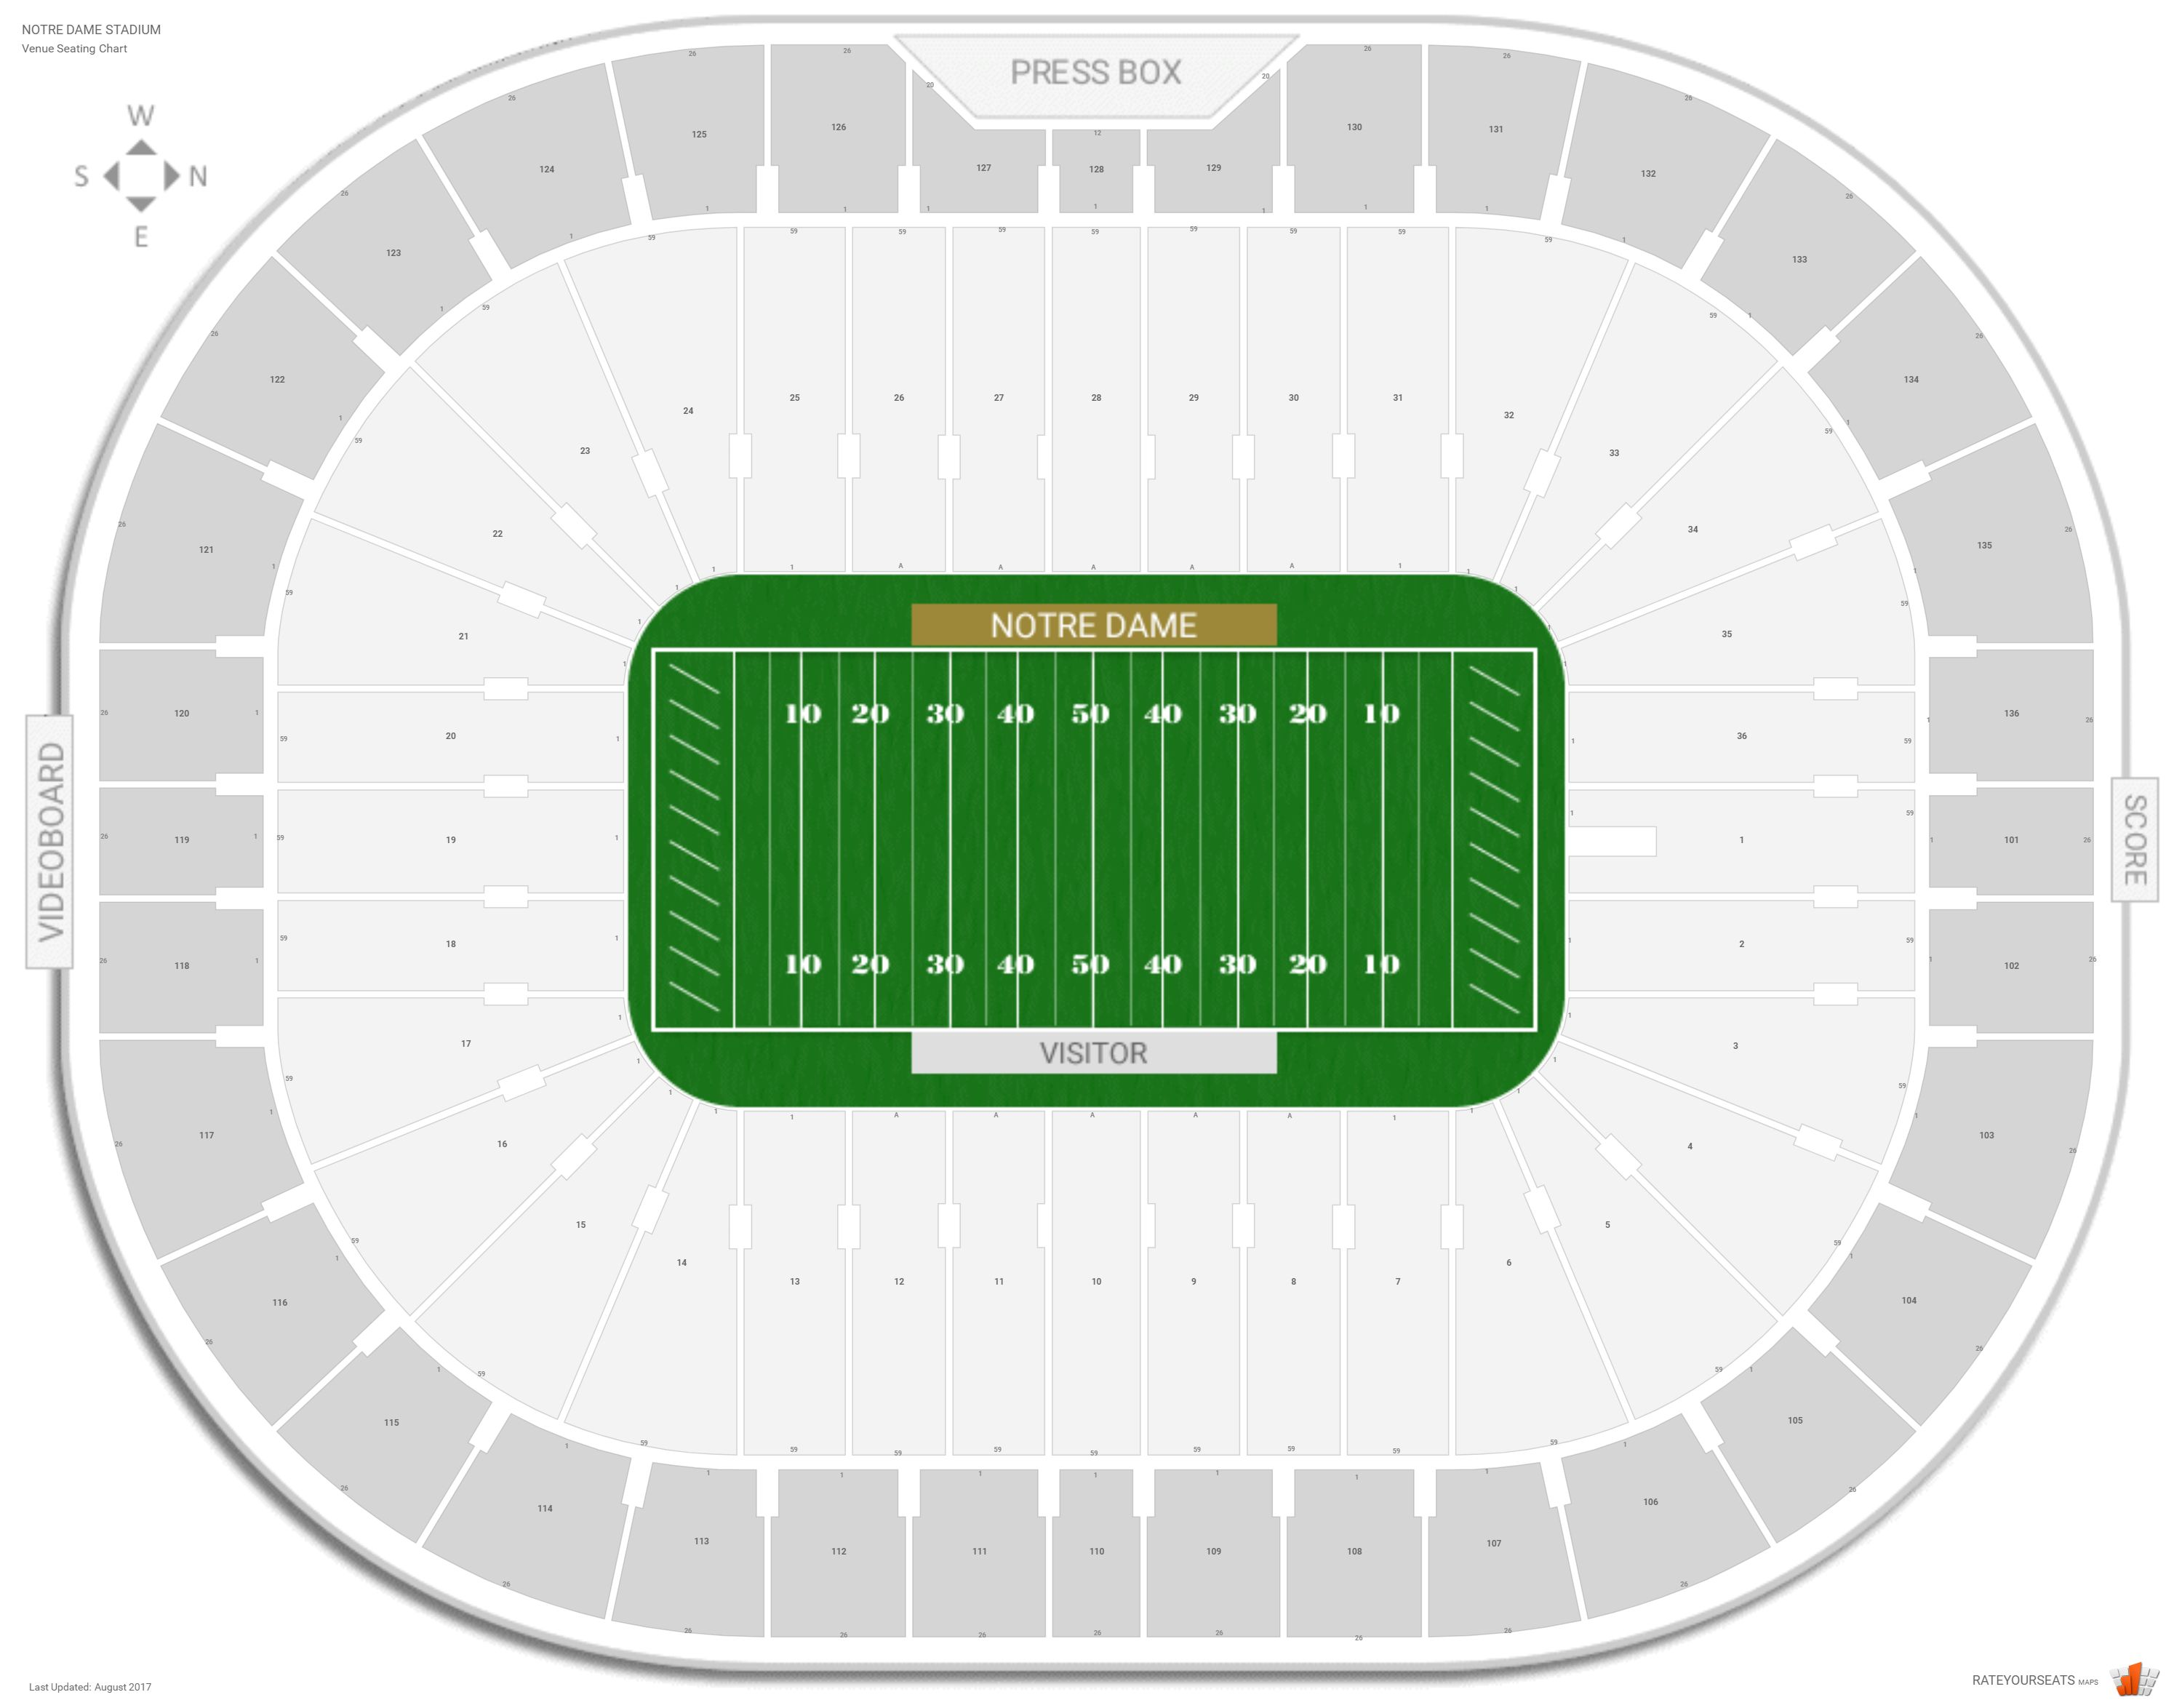 Notre dame stadium notre dame seating guide rateyourseats com